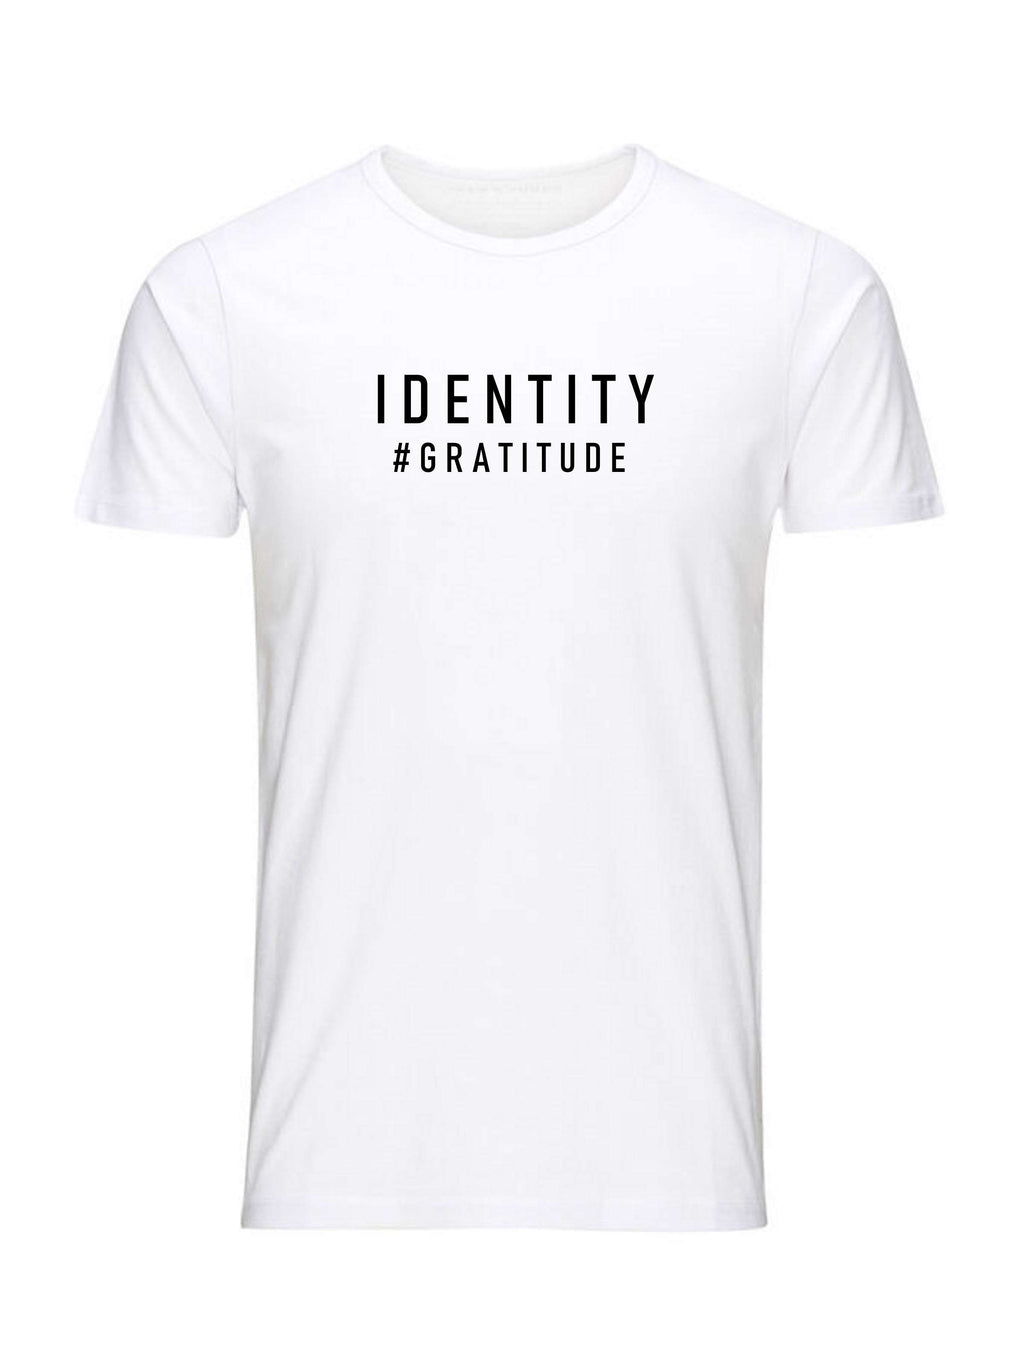 Limited Edition NHS #Gratitude Unisex T-Shirt (White)